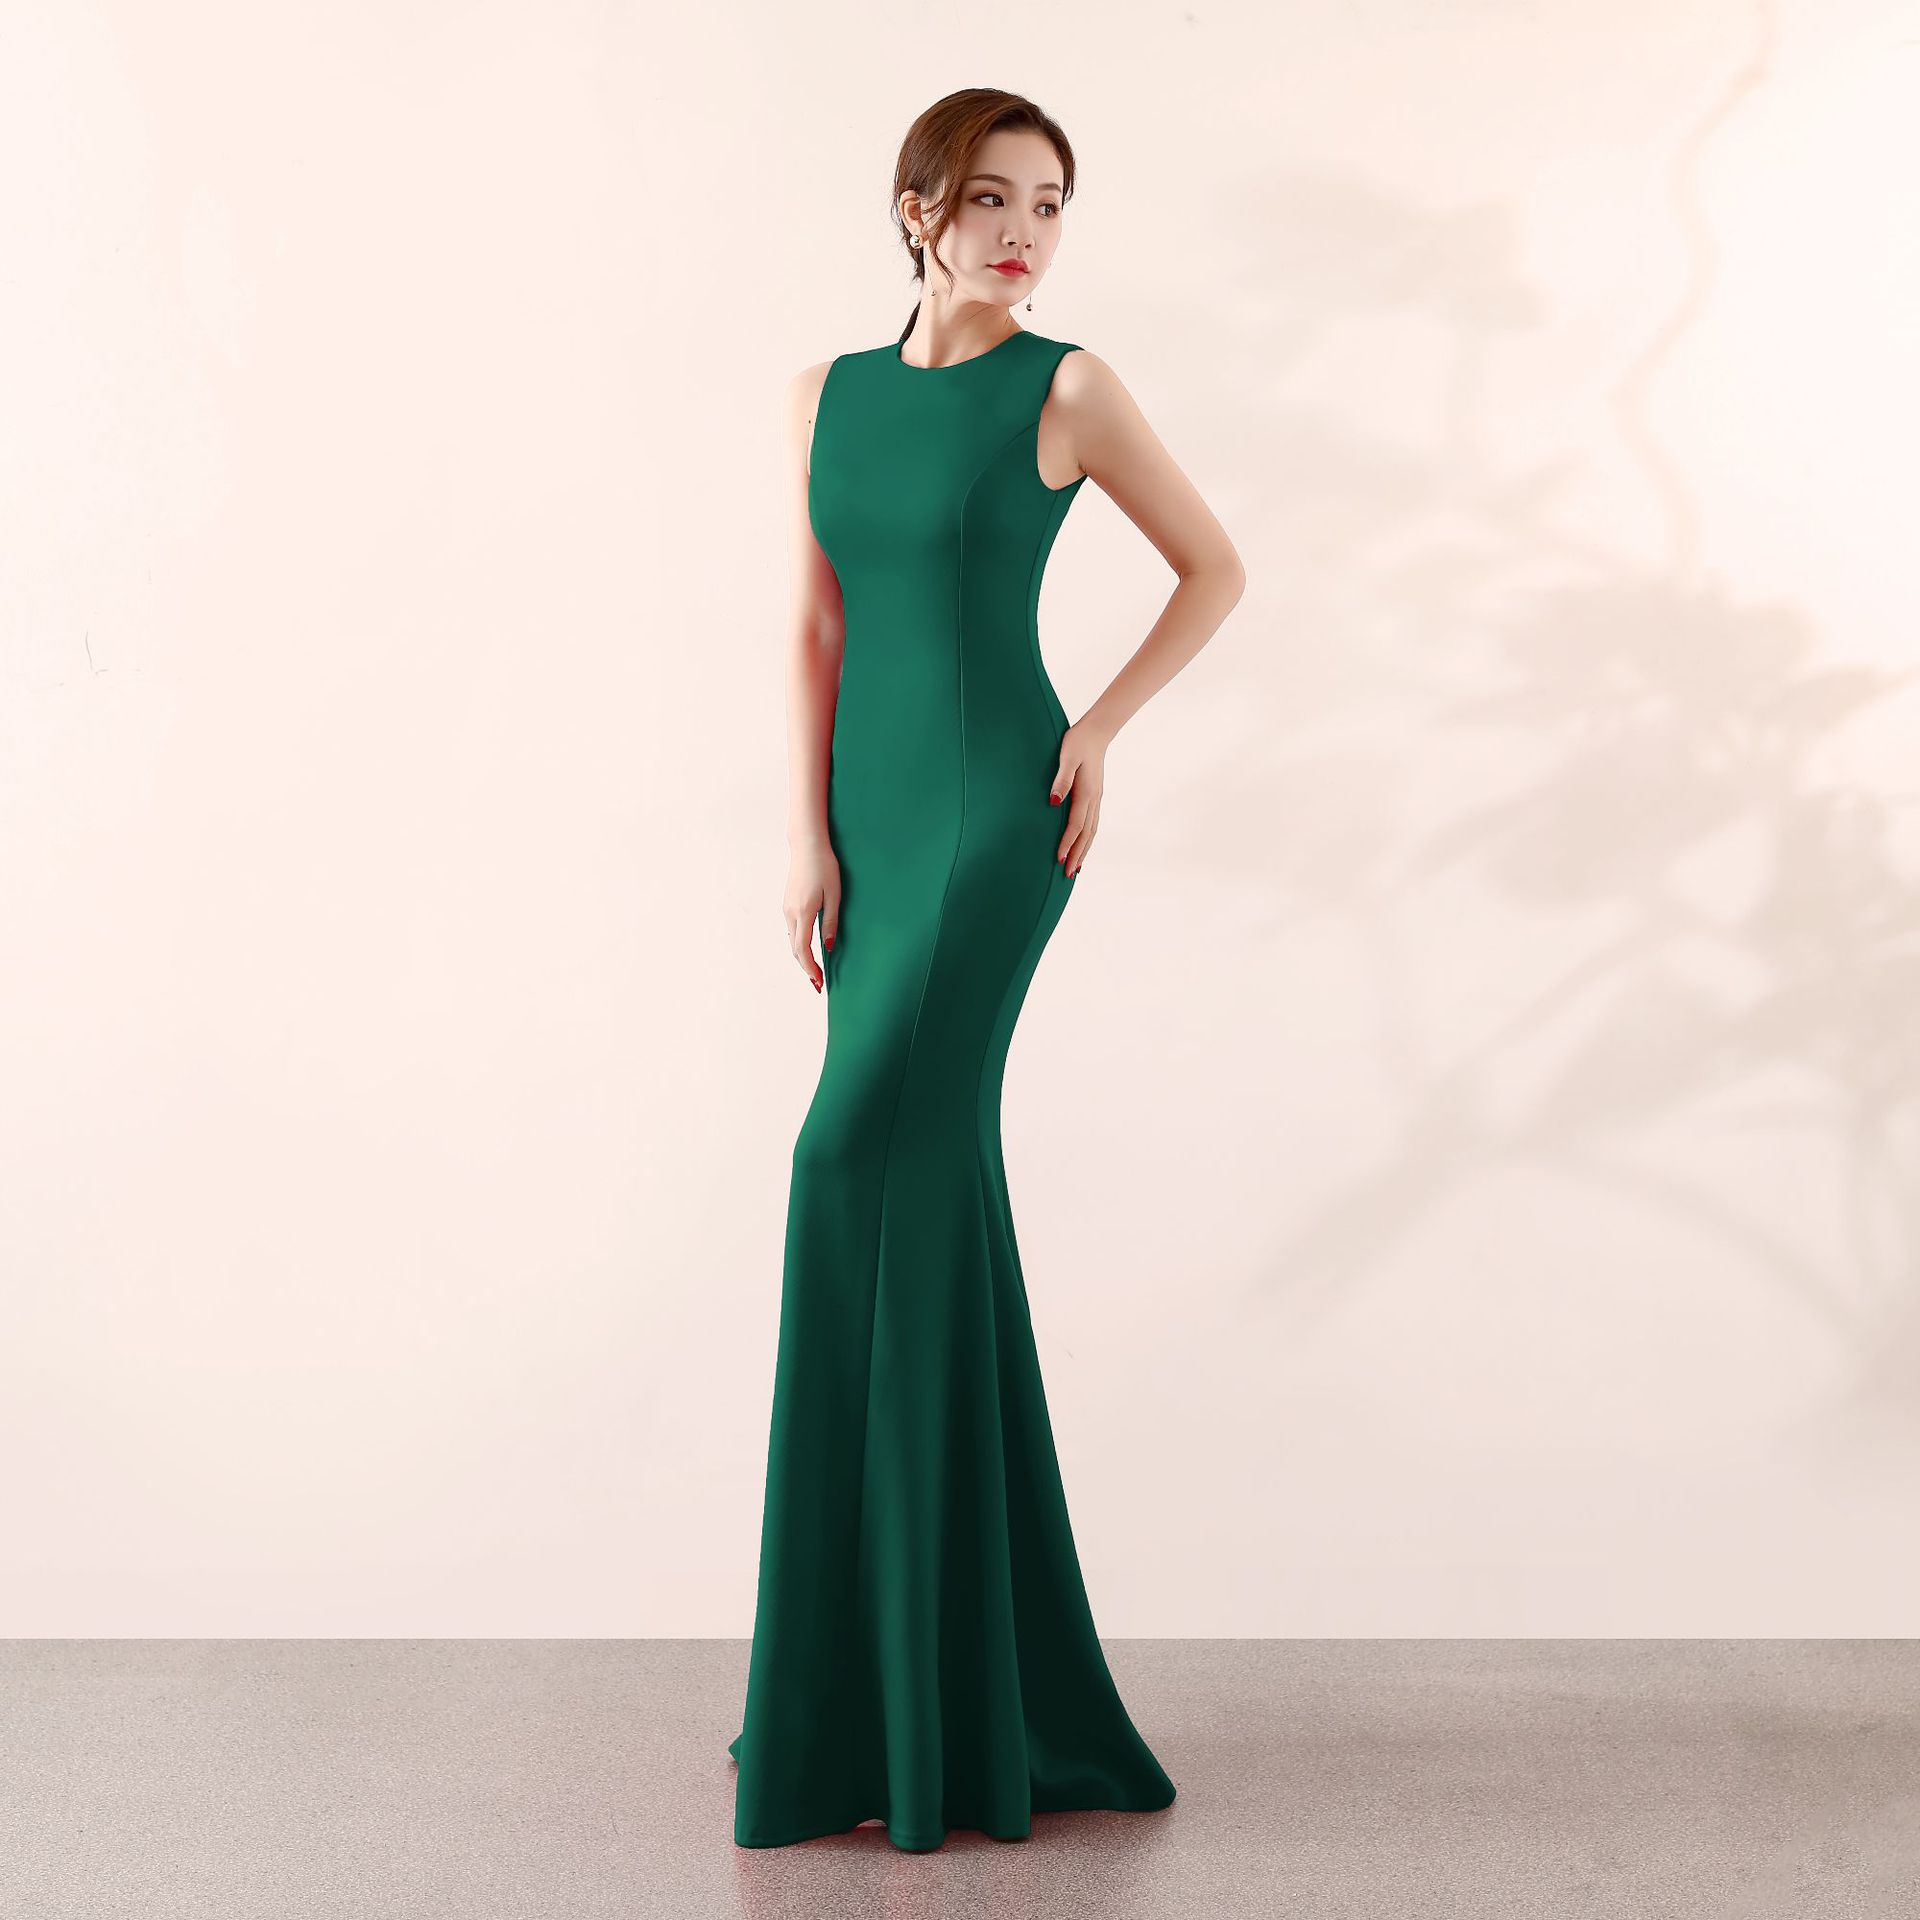 Skyyue Soild O neck Evening Dress Women Party Dresses Elegant Robe De Soiree Sexy Sleeveless Zipper Formal Gowns 2019 C096 DS4 in Evening Dresses from Weddings Events